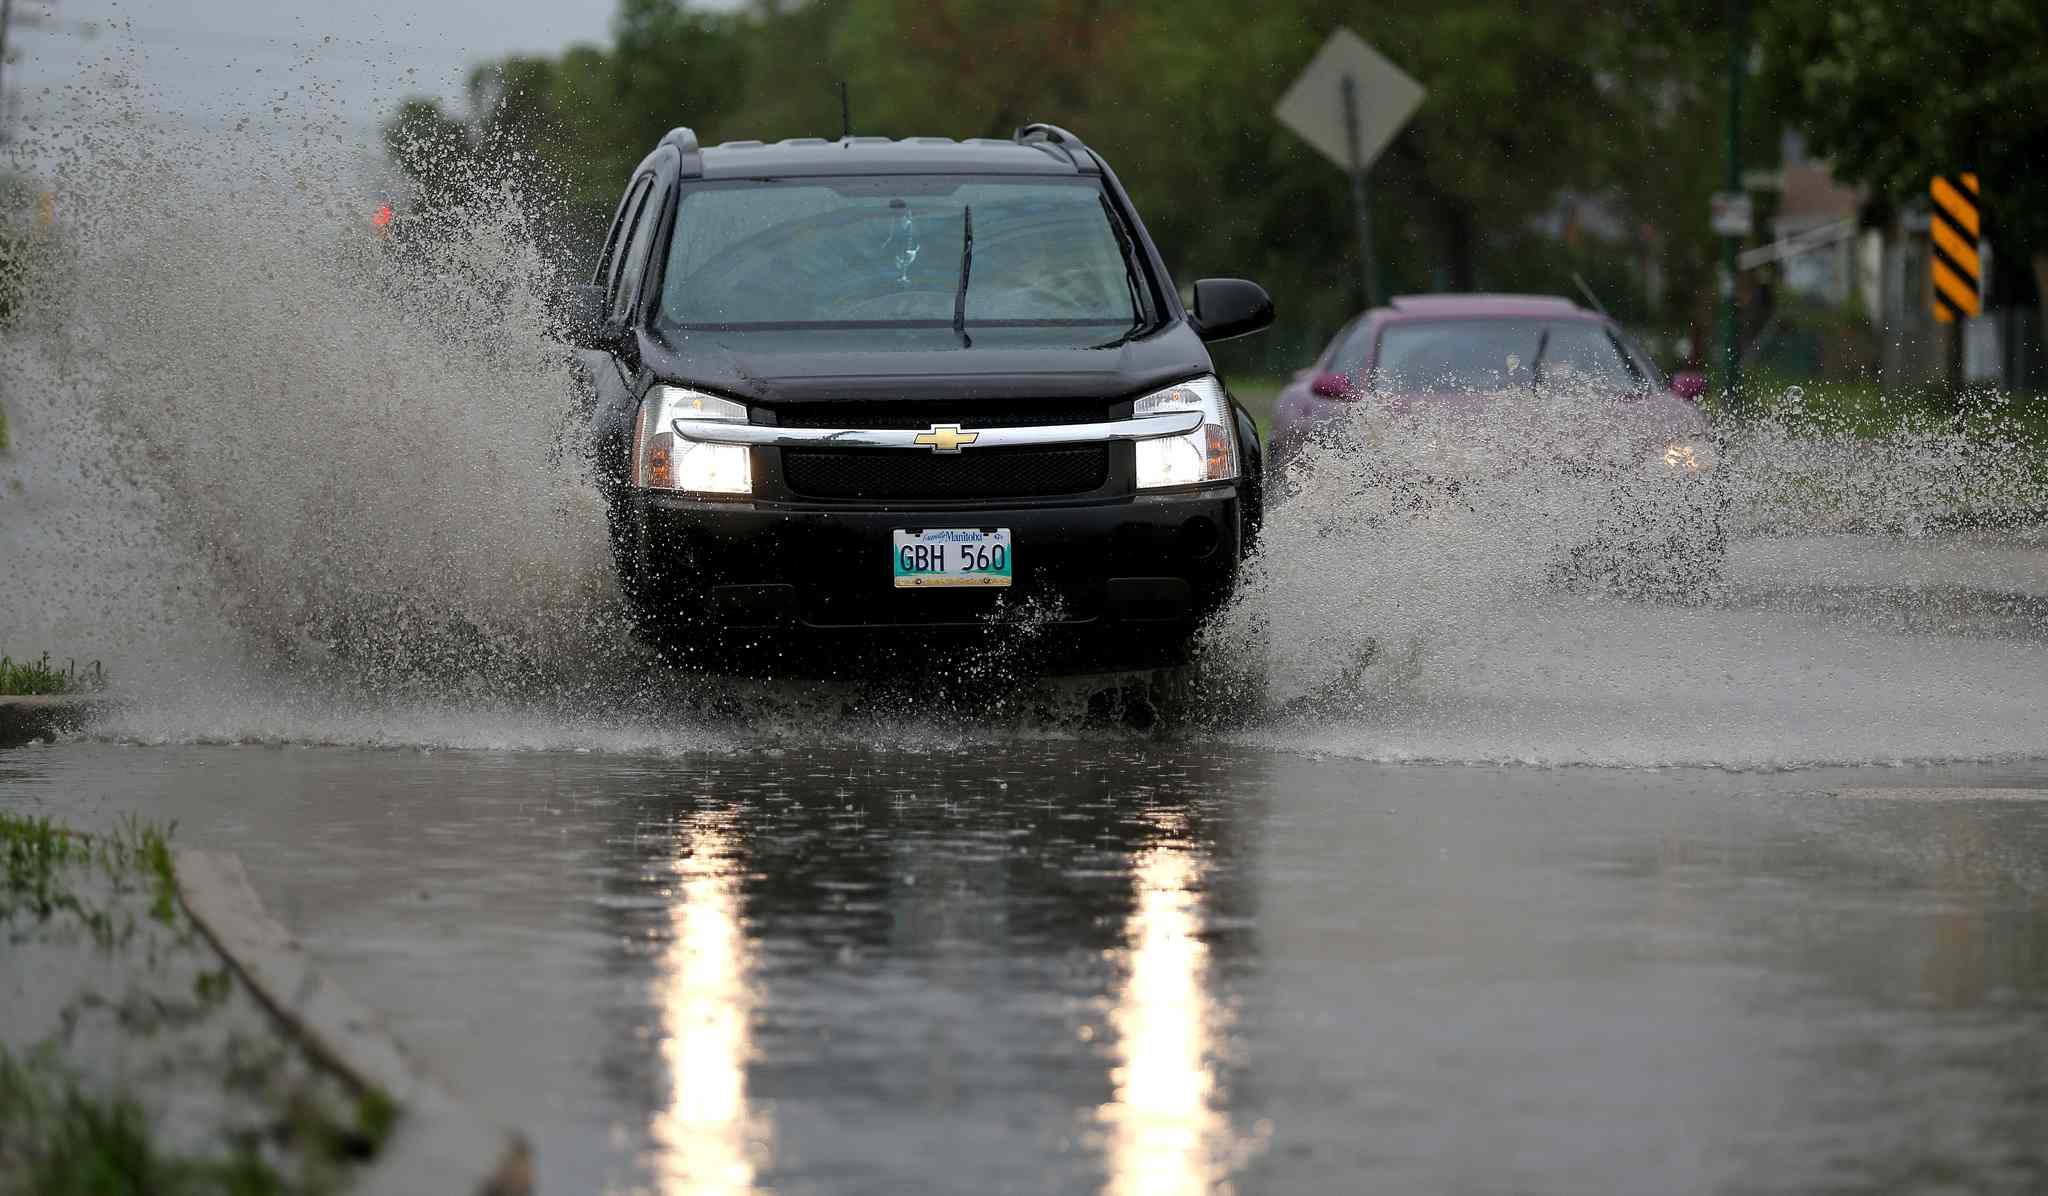 Vehicles splash through a deep puddle at Notre Dame Avenue and Border Street, Sunday, June 29, 2014.